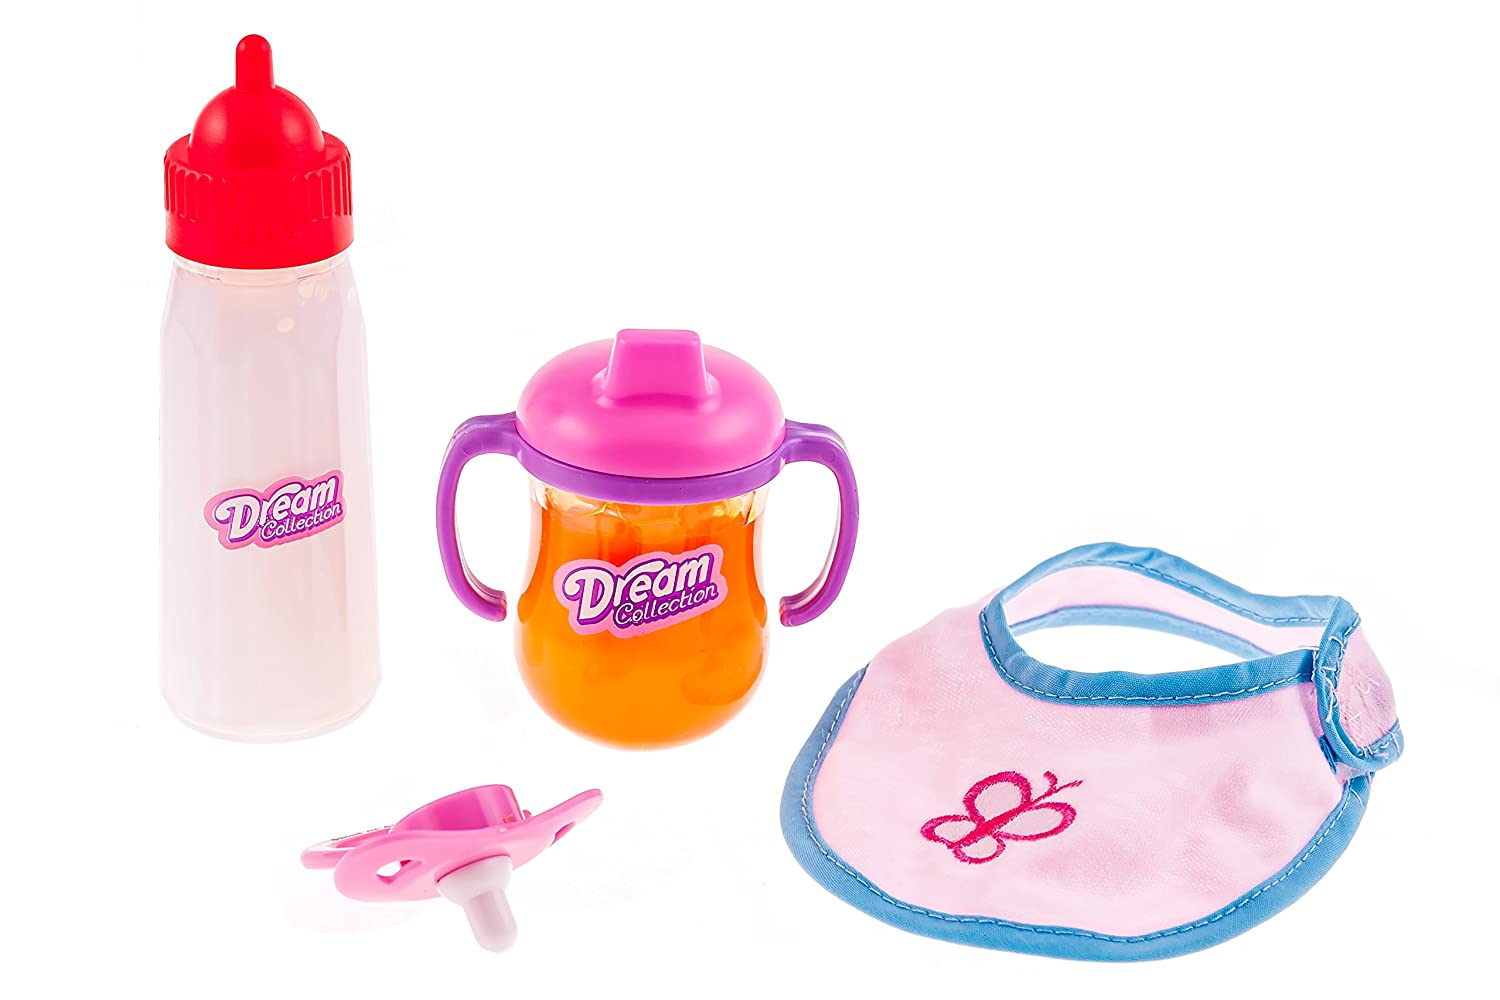 Dream Collection Doll Feeding Time Set with Pacifier Hasbro - Import 63126